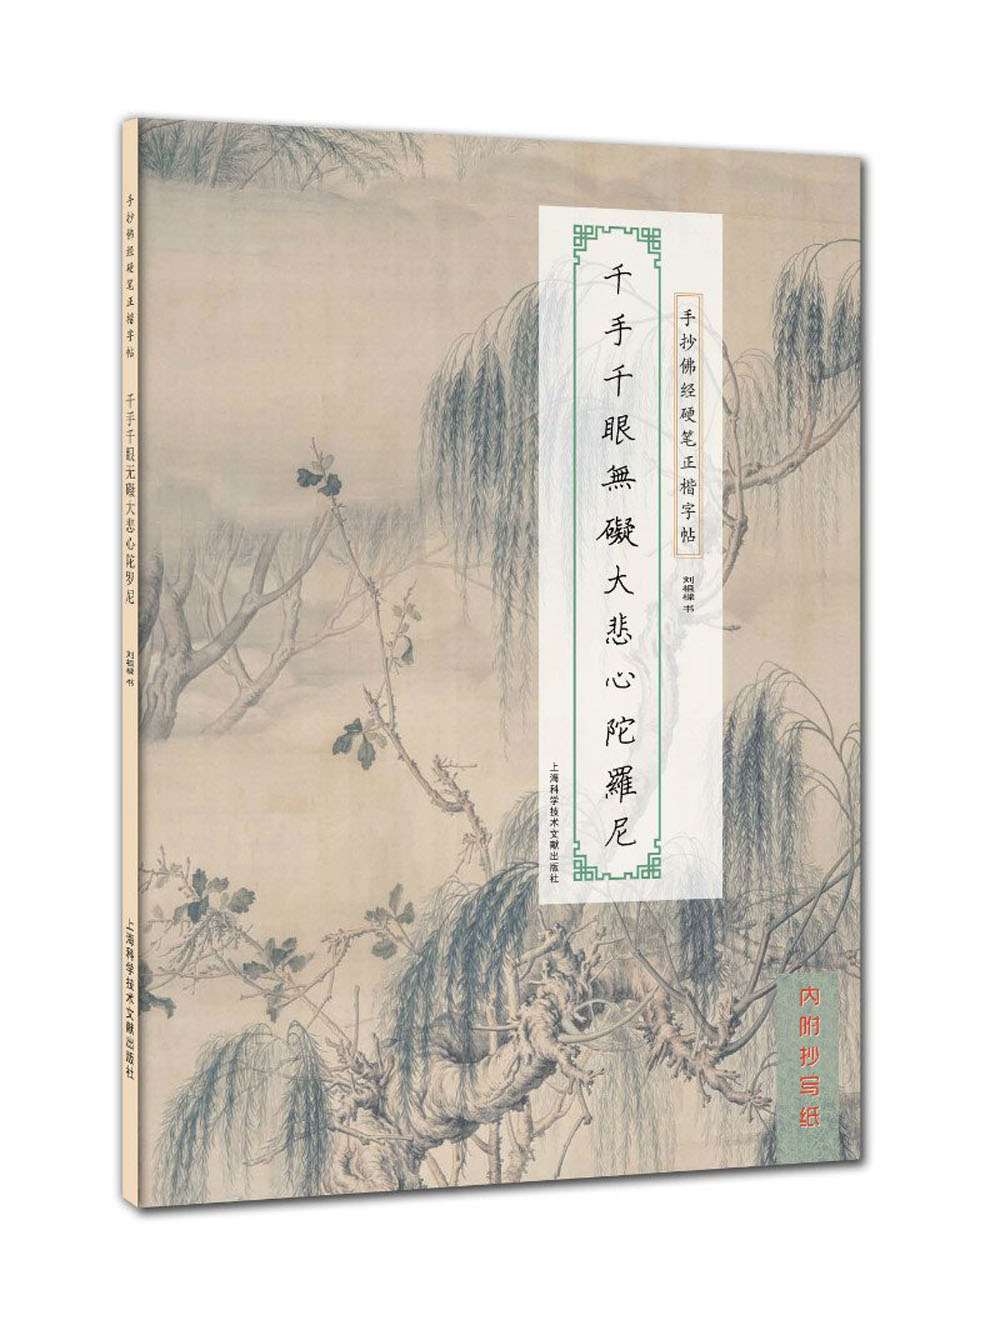 The handwritten Buddhist scriptures in pen copybook series : Qian Shou Wu Yan Da ning Da Bi Xin An luo Ning luo qian yellow 43